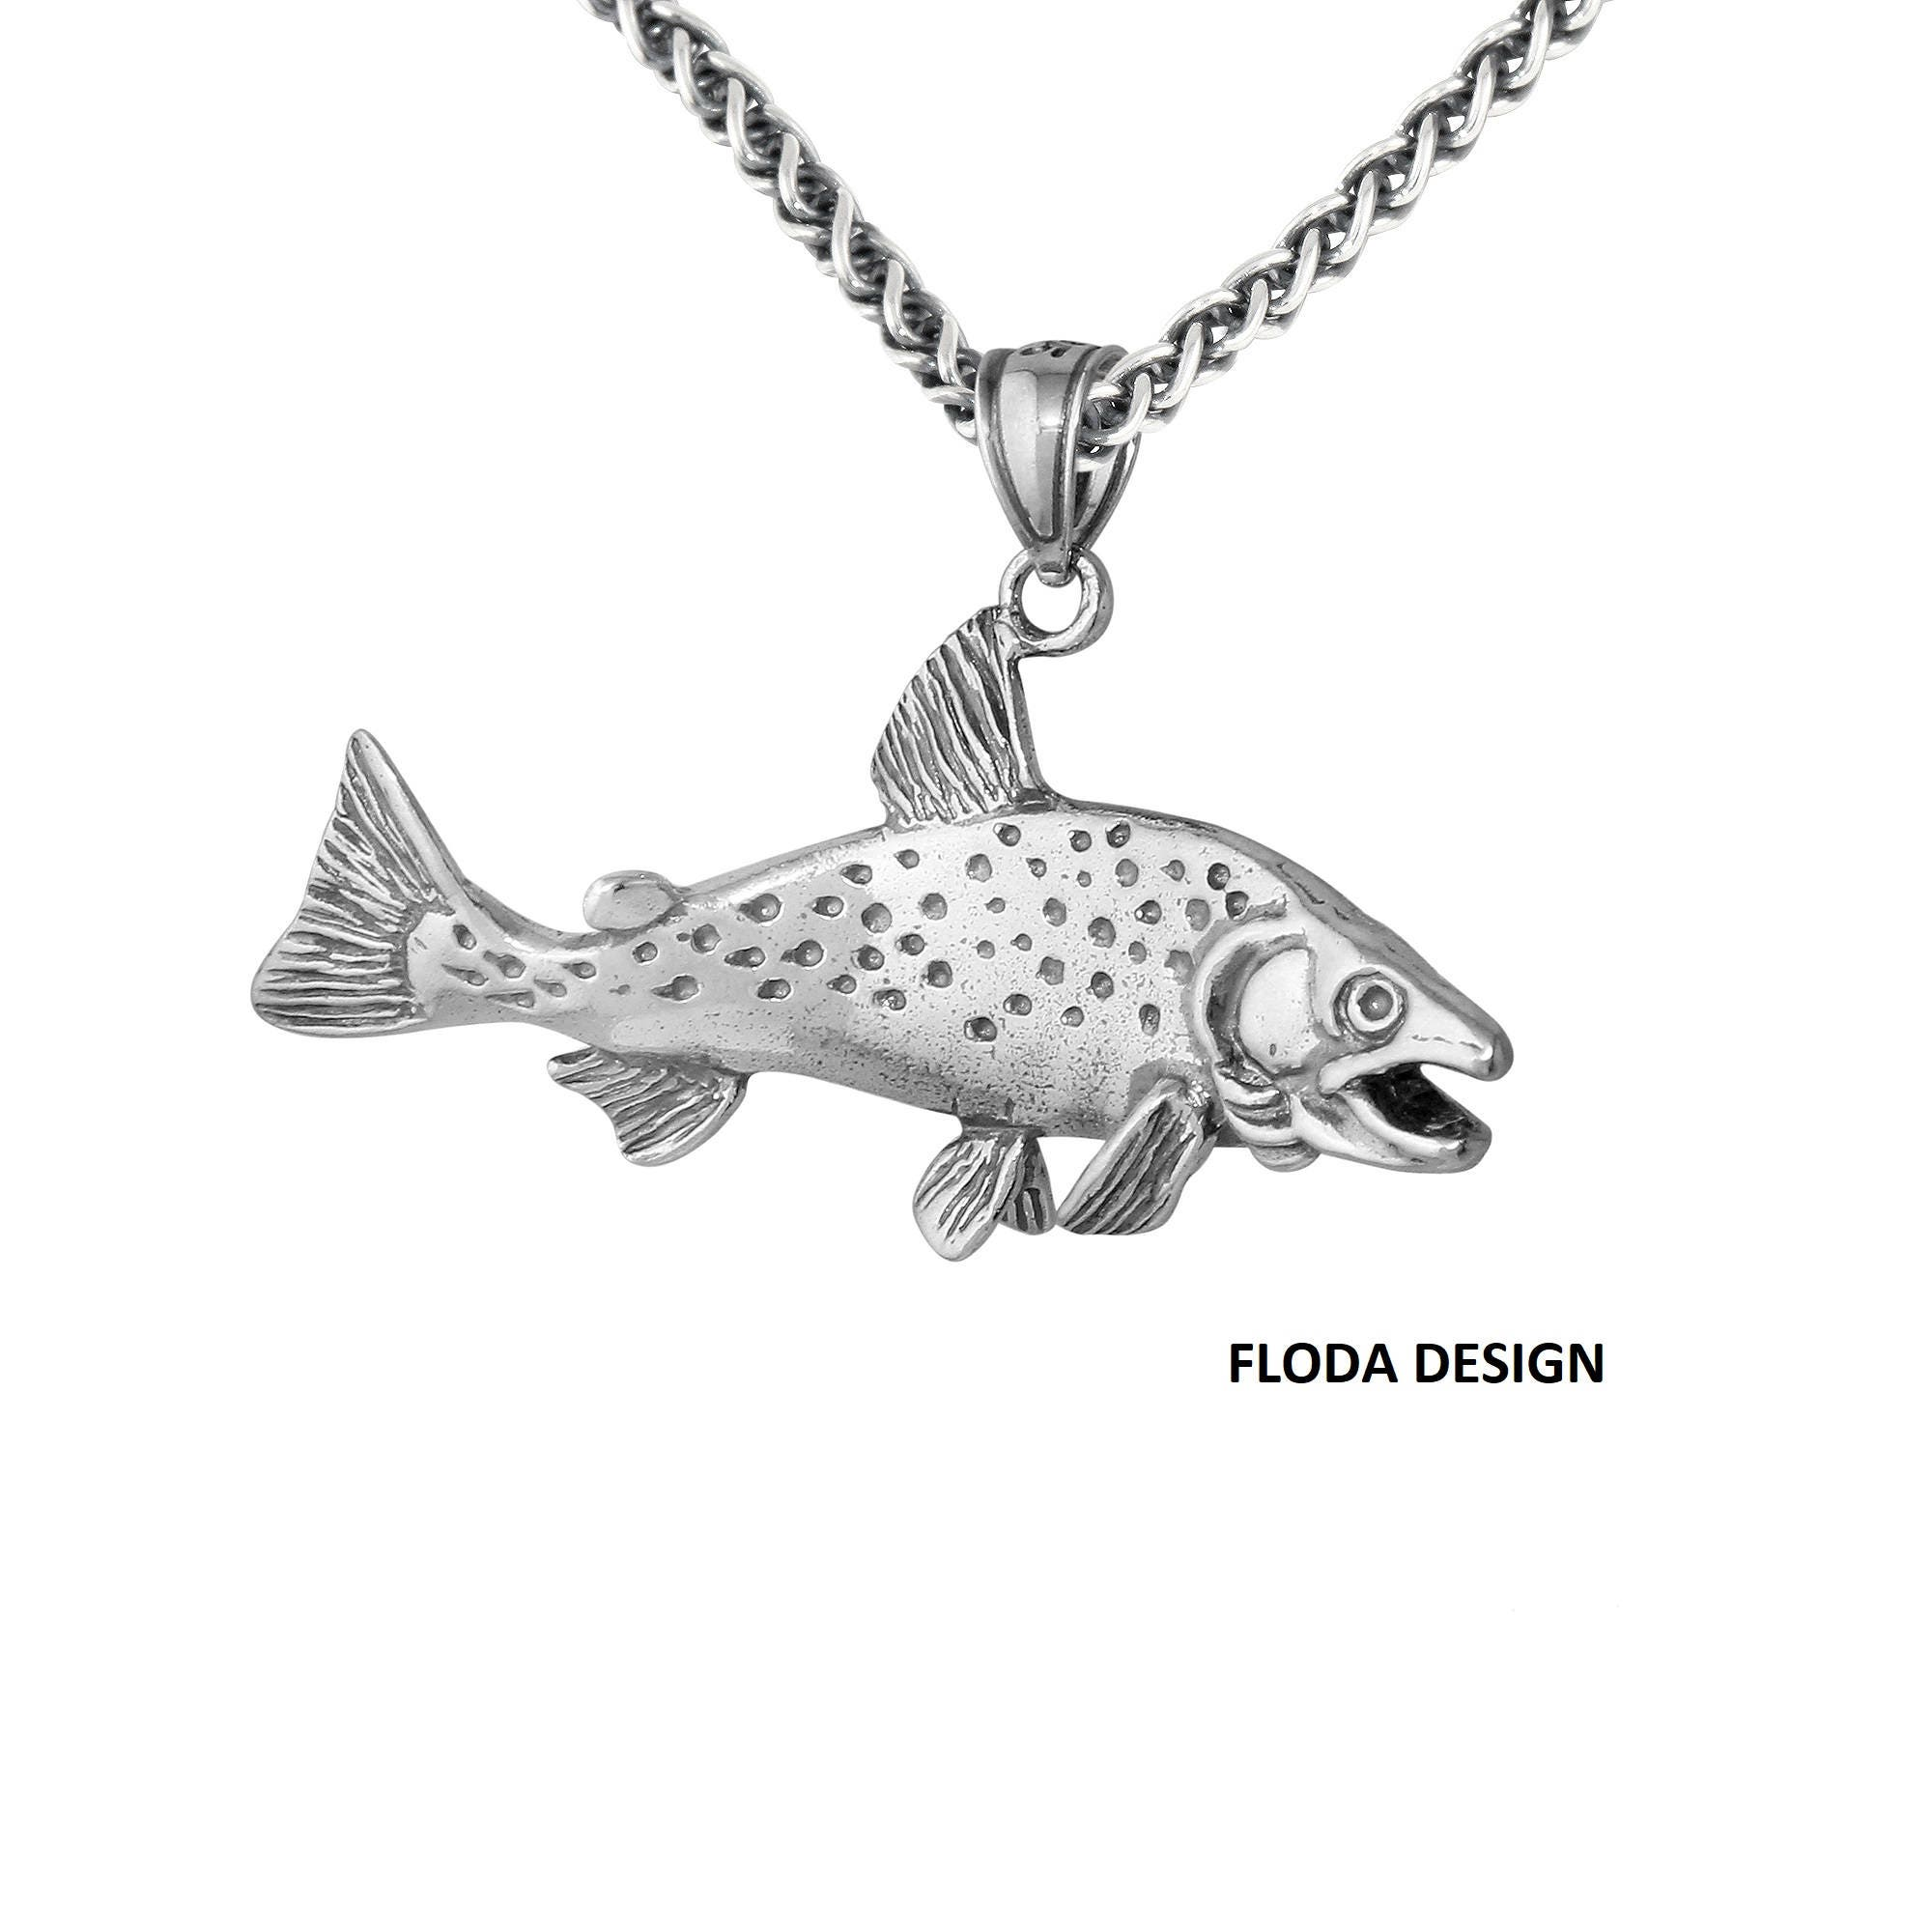 die shark the collection kollektion webside hammerhead necklace baruna tuna silver